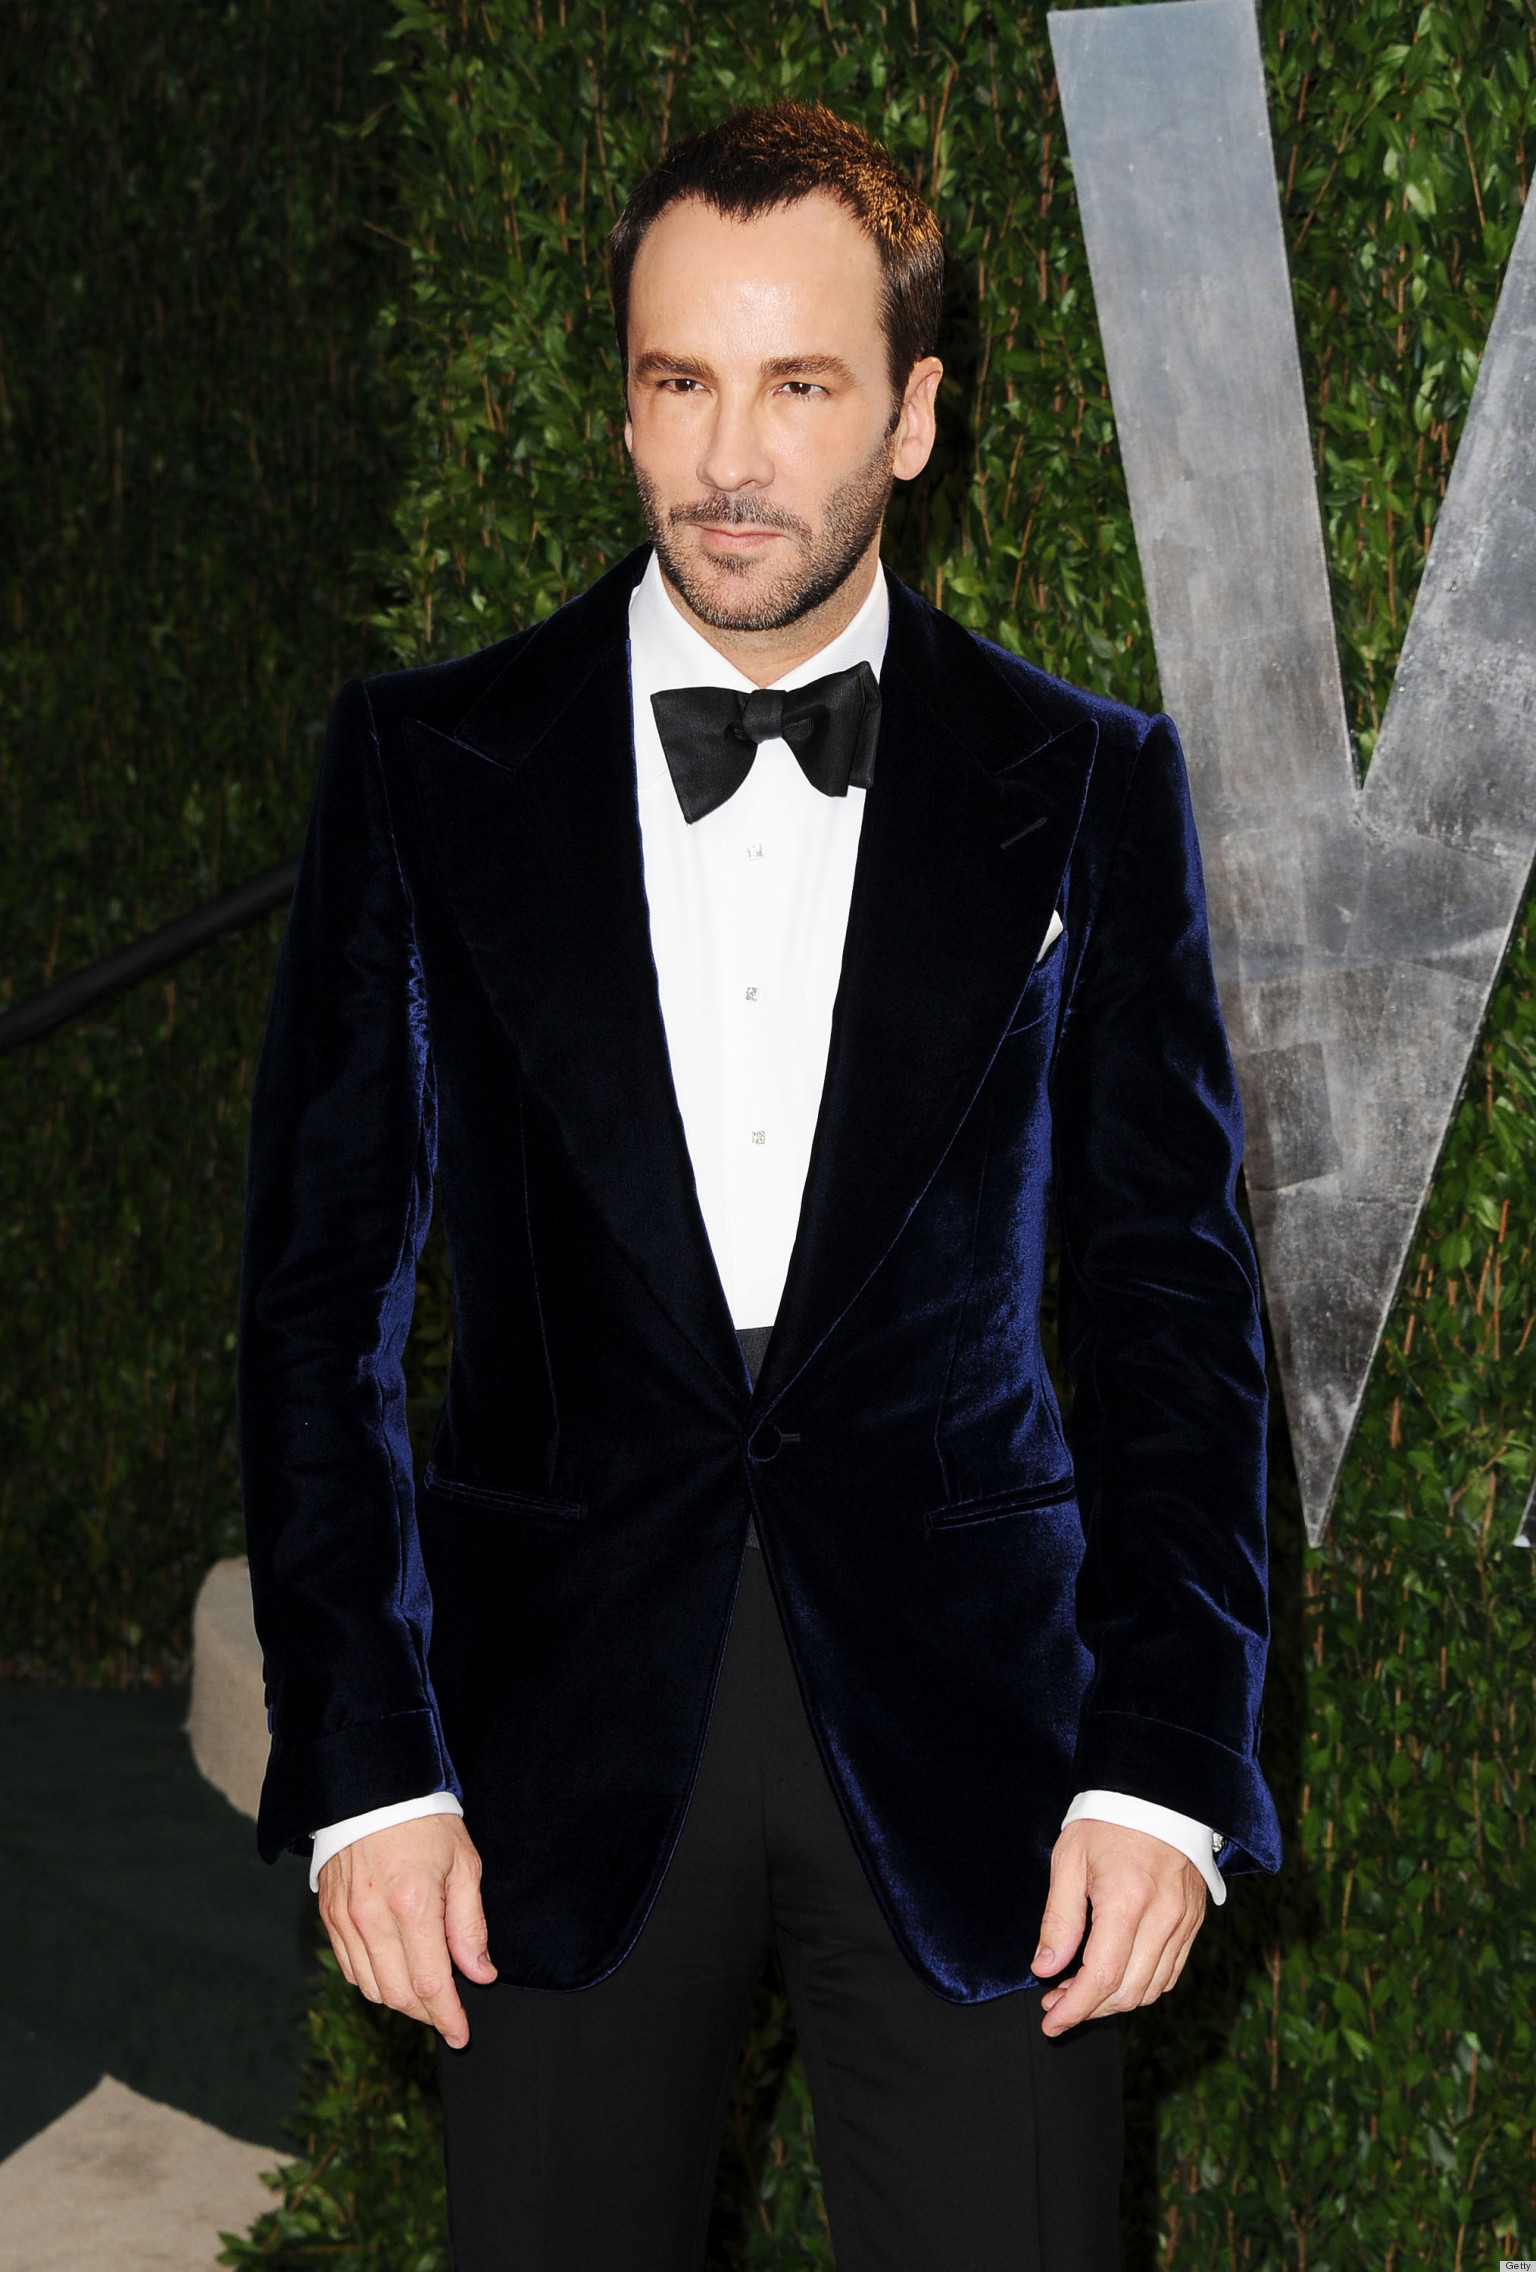 Tom Ford: 'Doing Coke Off The Table' Was Common Among